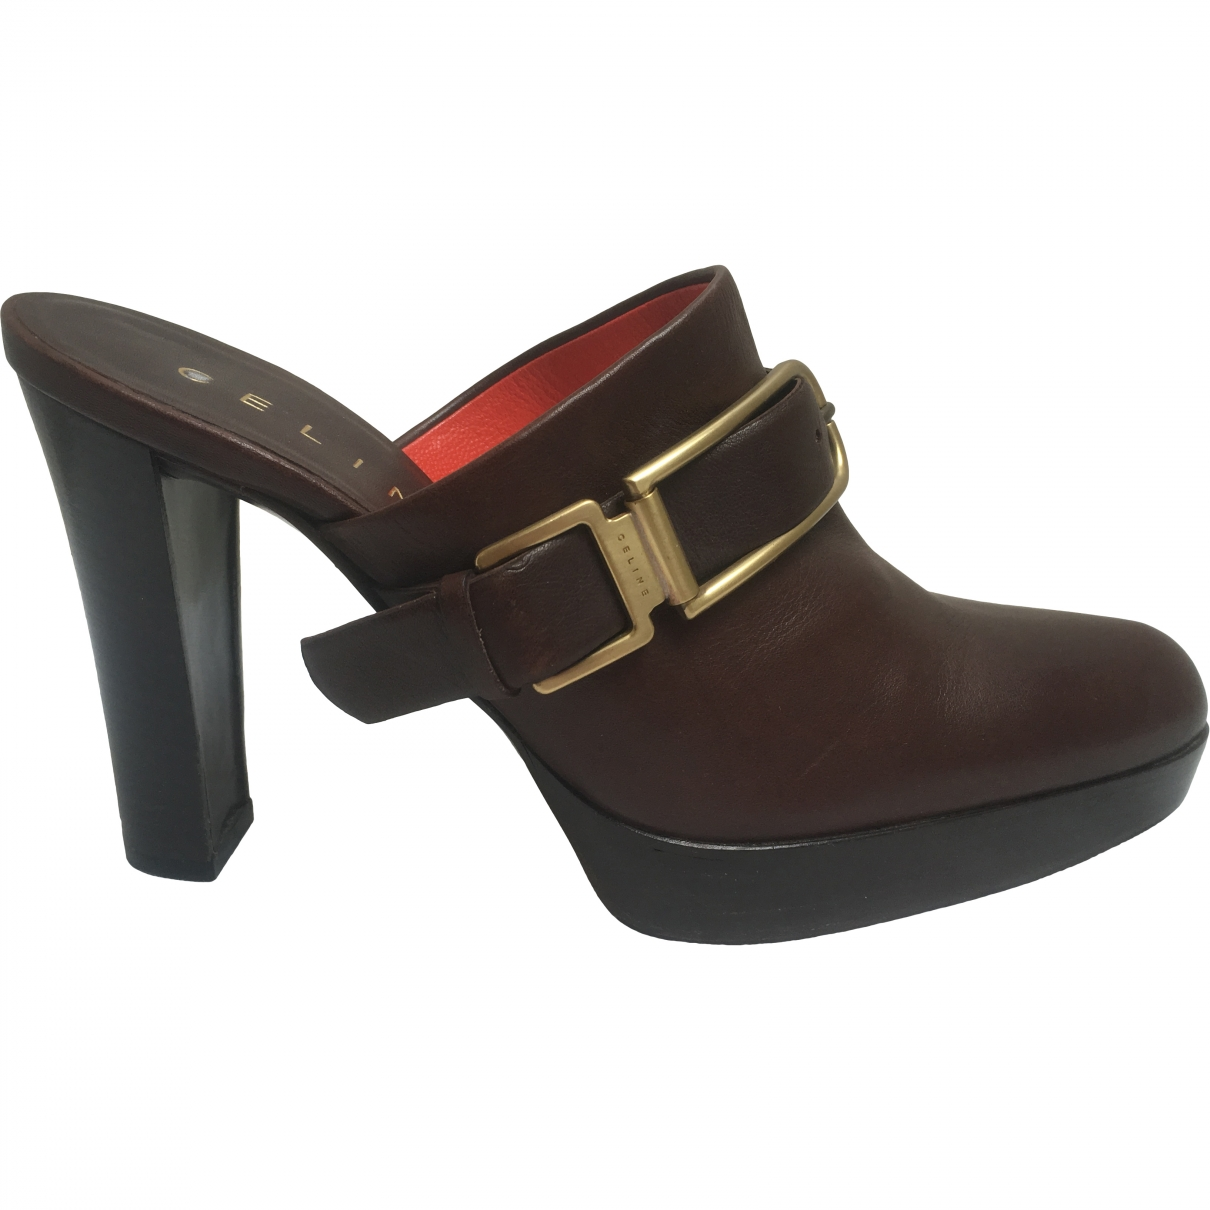 Celine \N Brown Leather Mules & Clogs for Women 37 EU